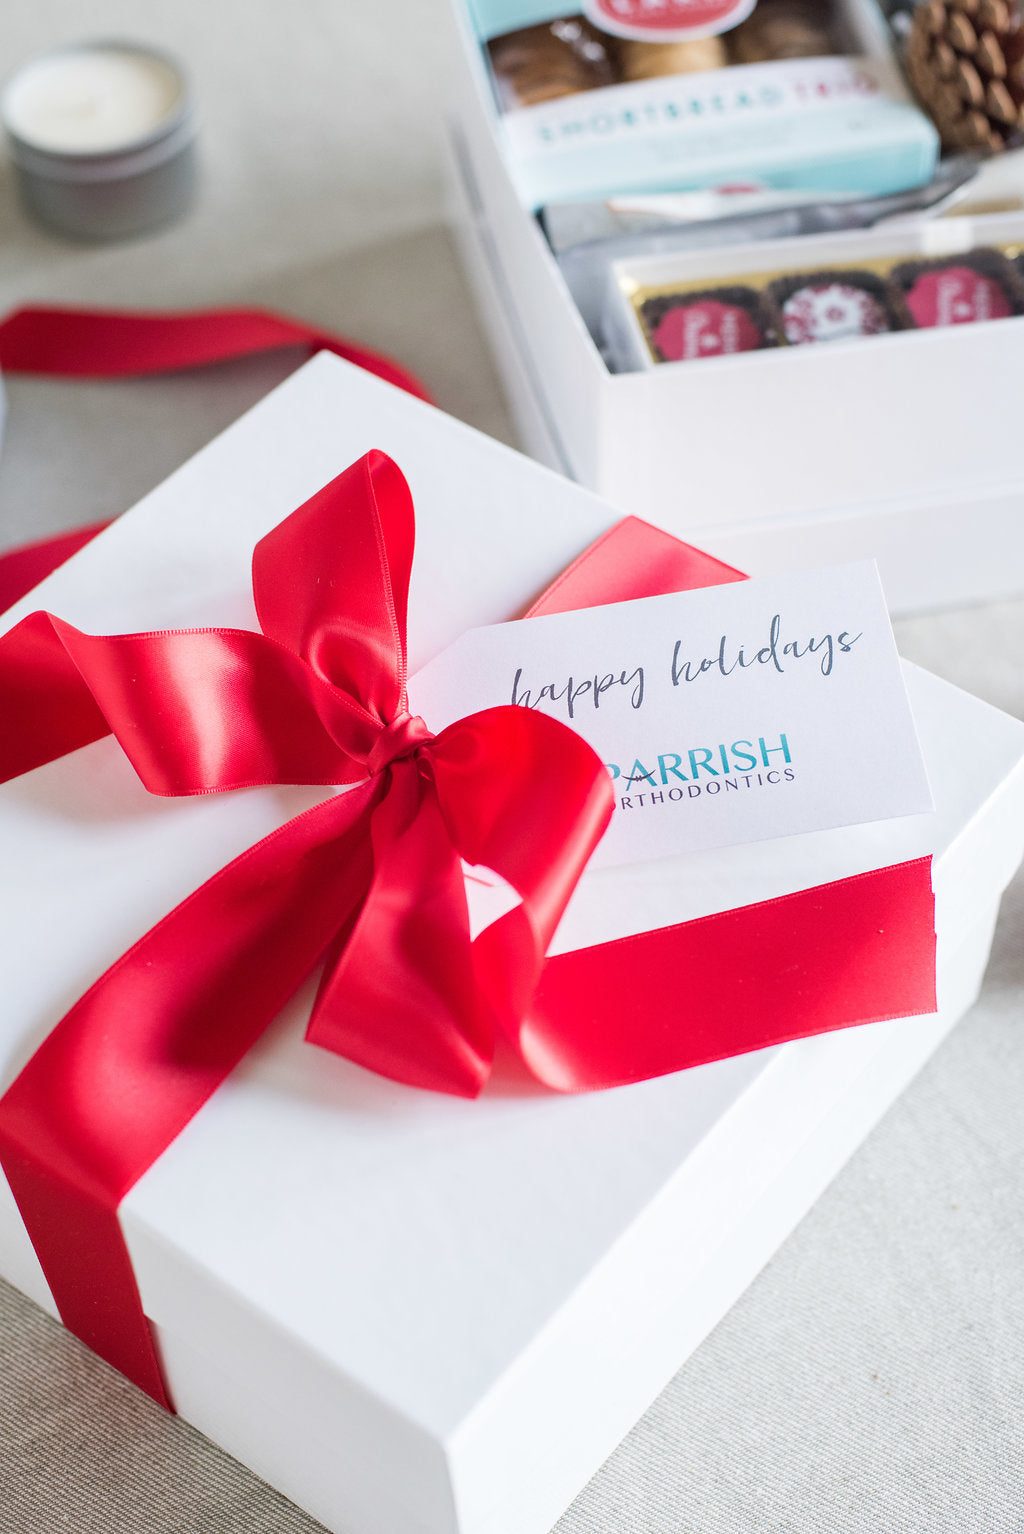 Bright creative holiday client gifts